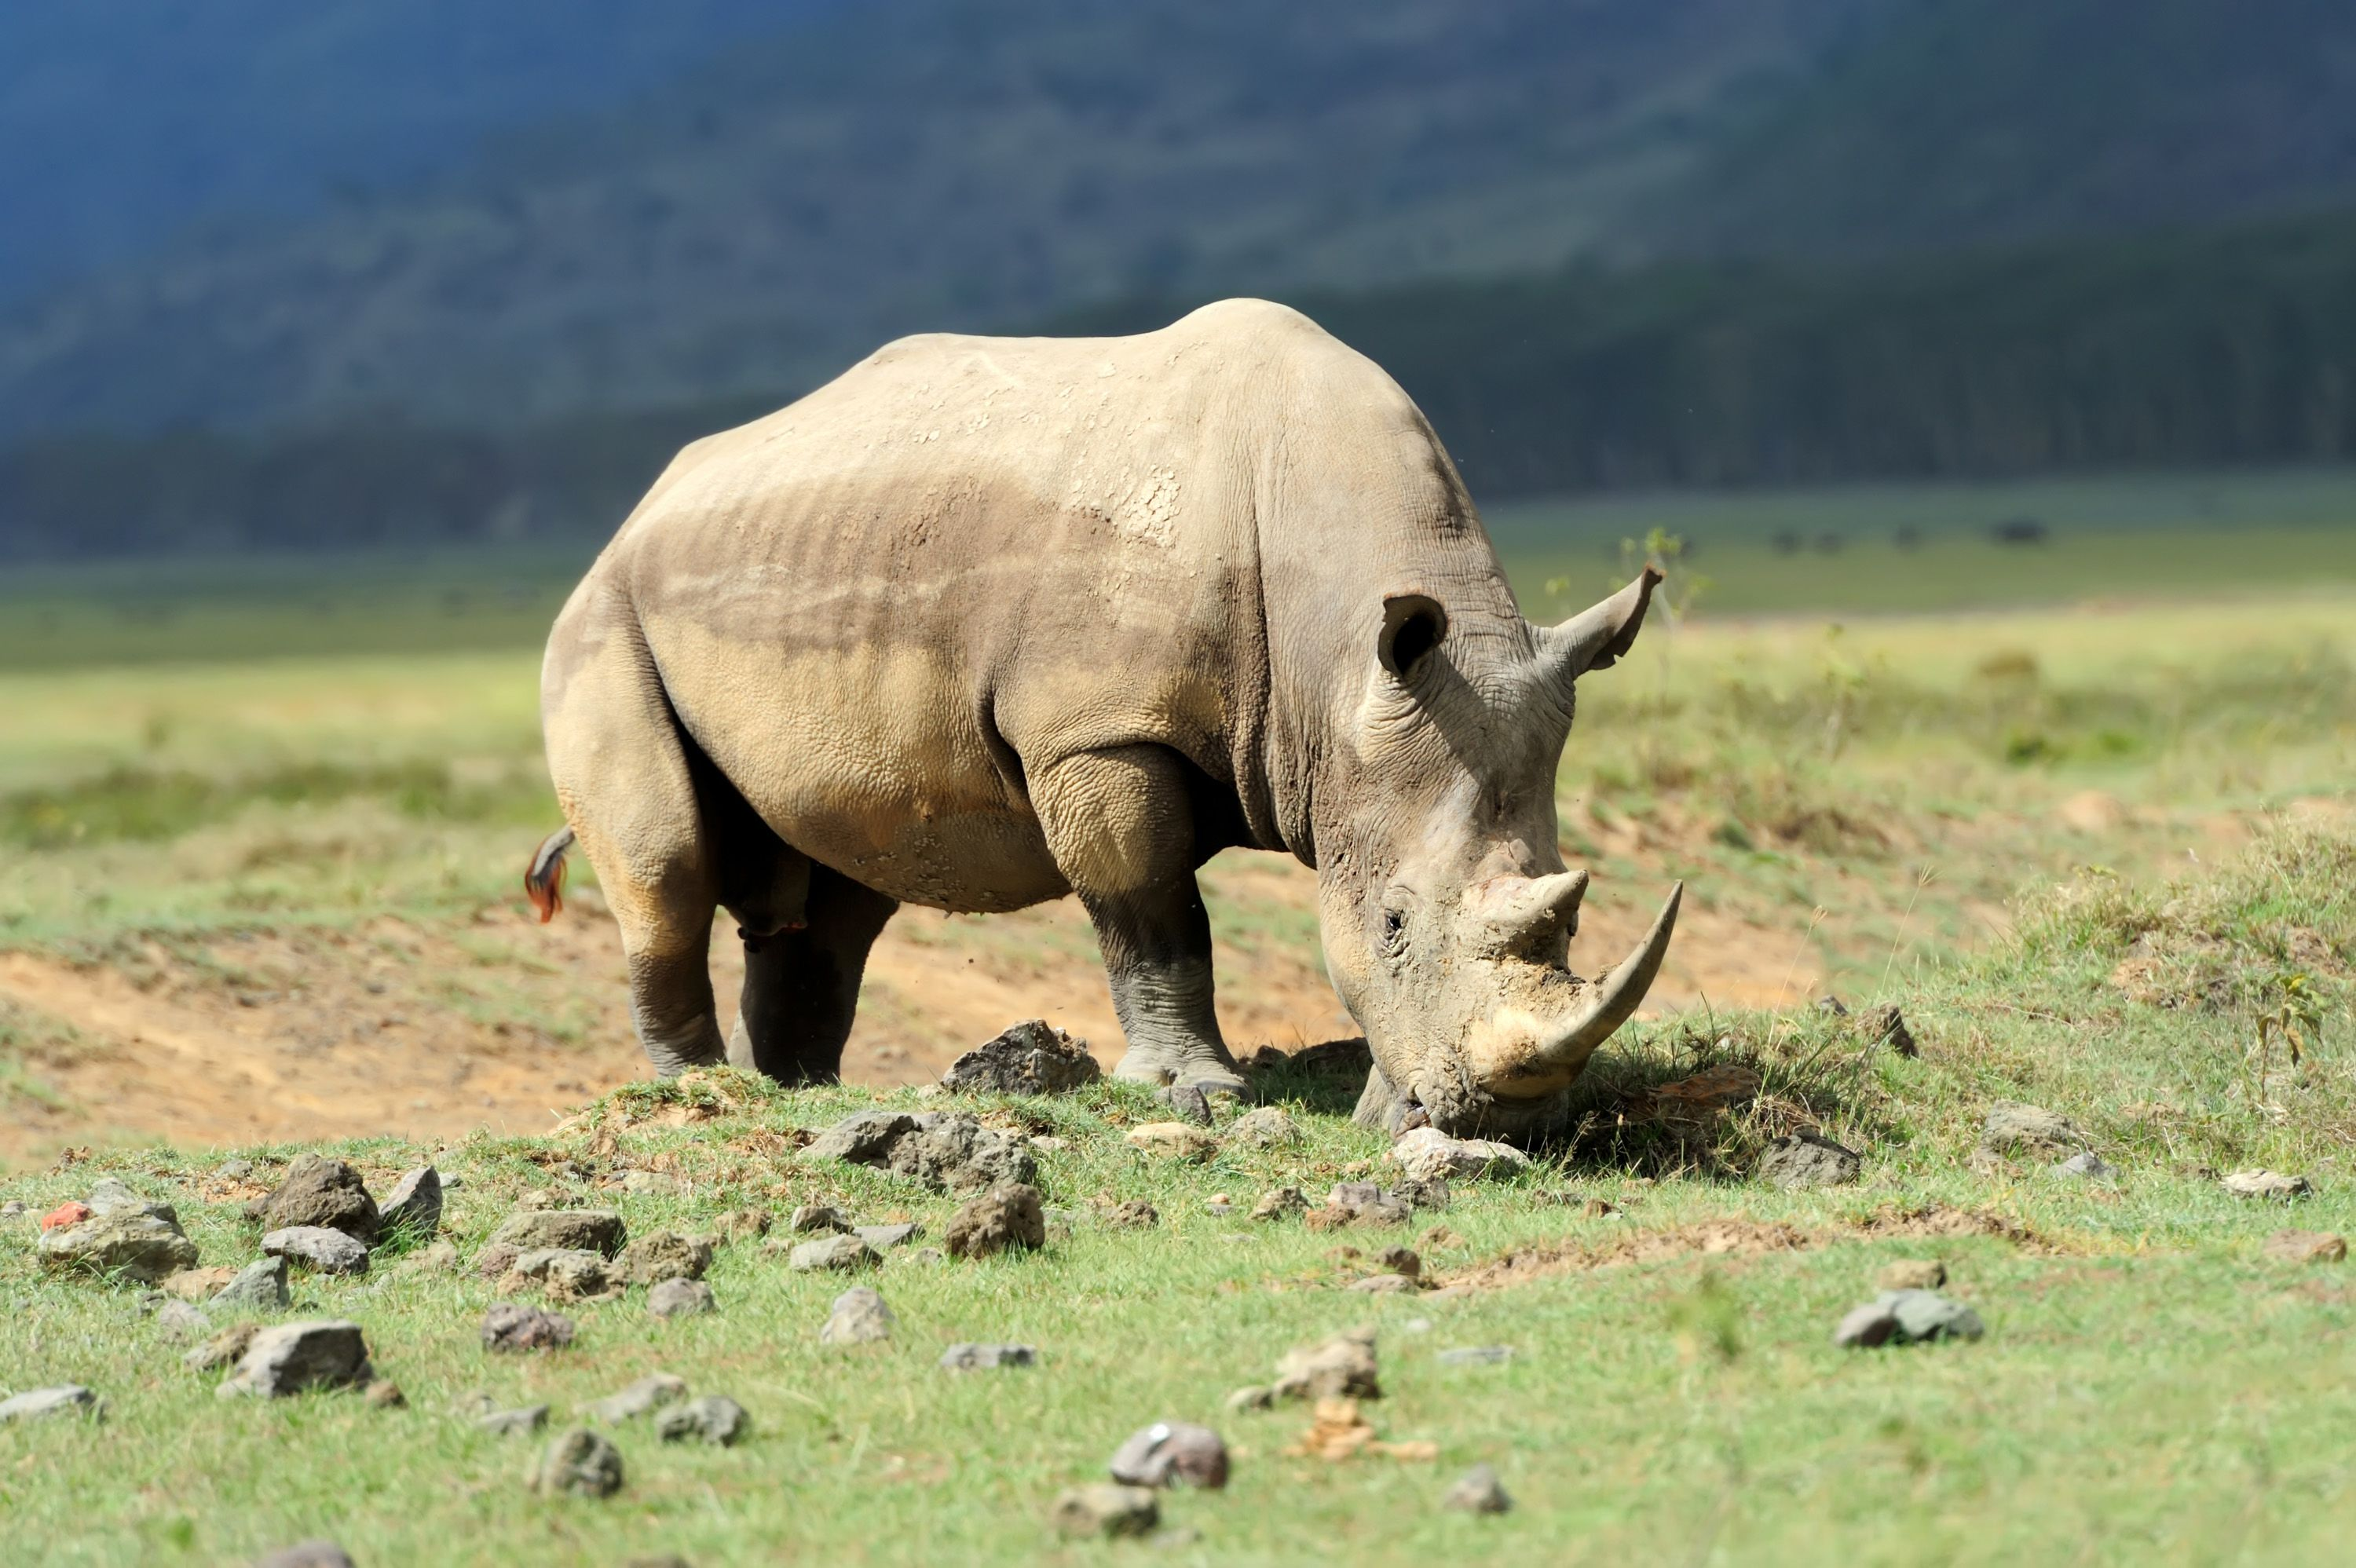 wildlife-rhino-lake-nakuru-15237.jpg